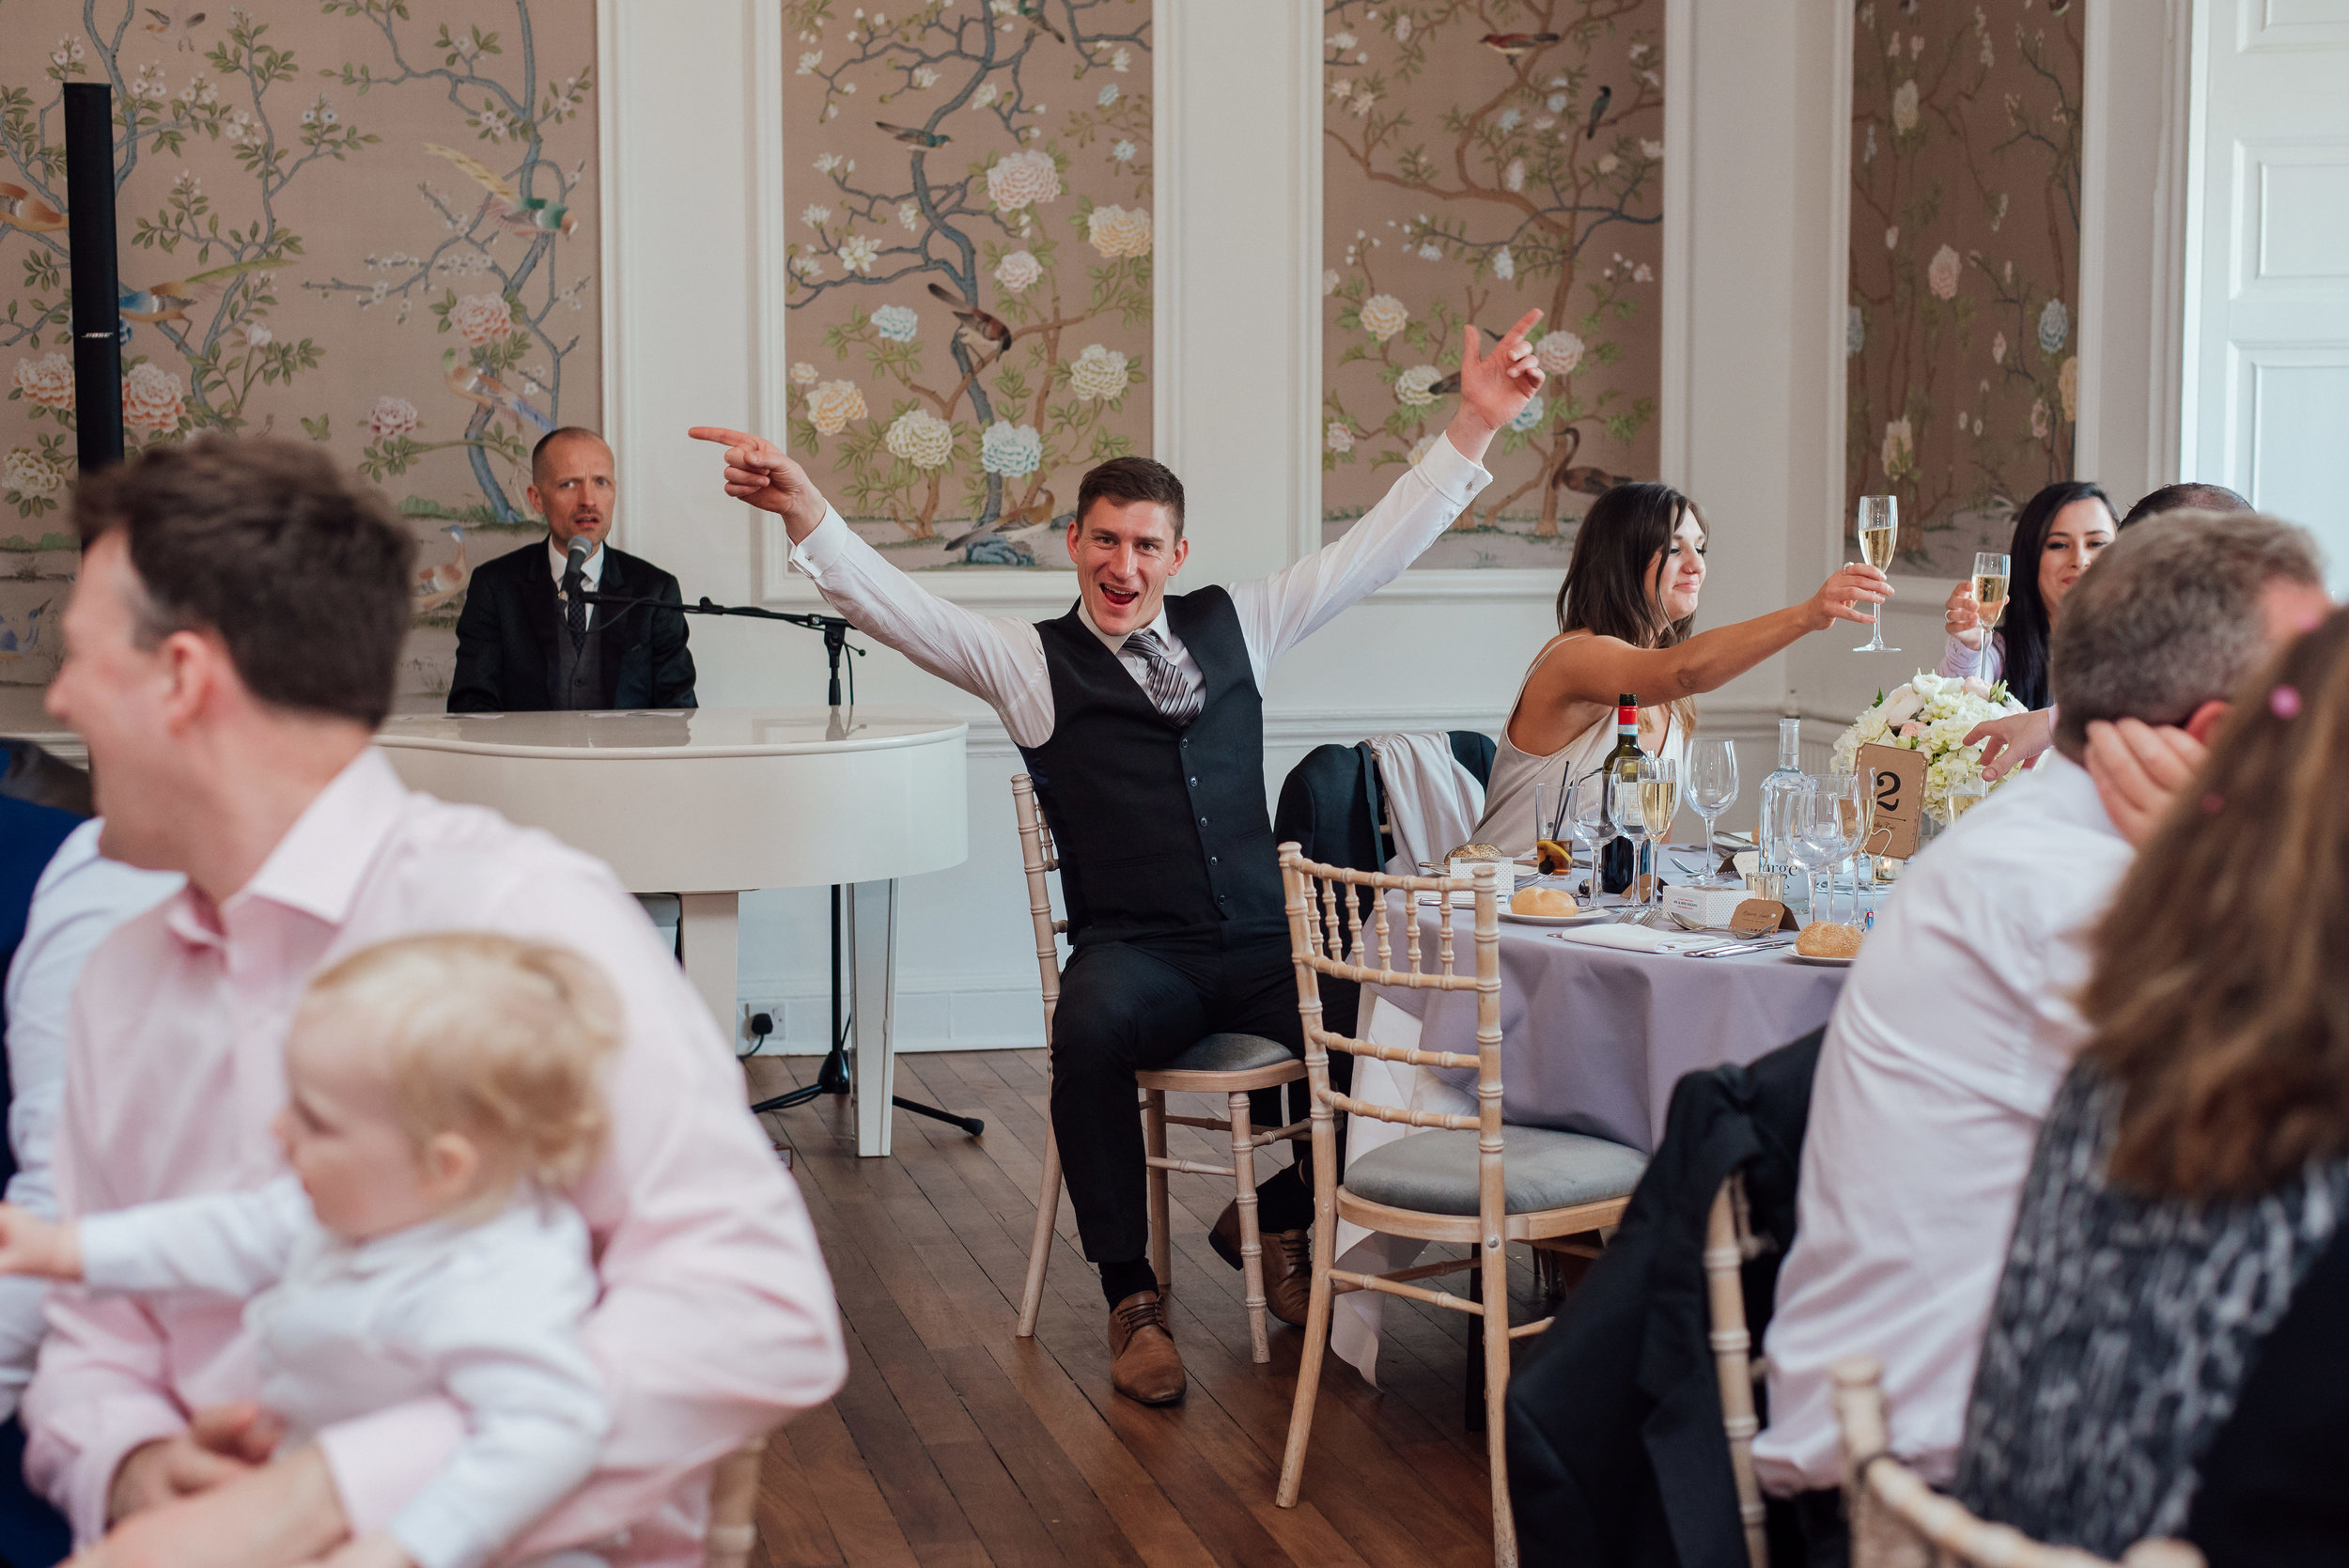 The George in Rye Wedding by Amy James Photography - Hampshire Surrey and Berkshire Wedding Photographer